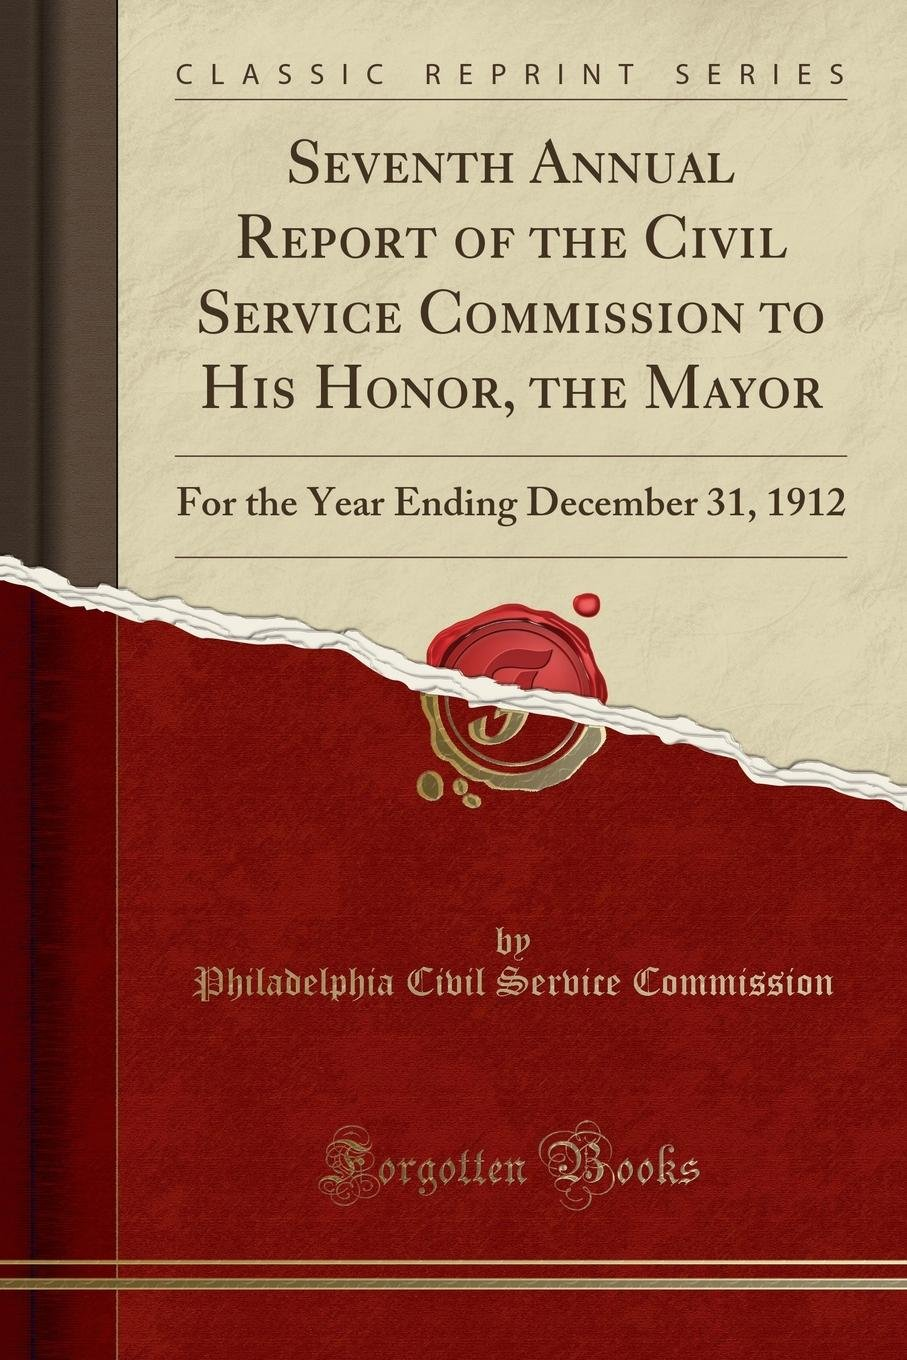 Seventh Annual Report of the Civil Service Commission to His Honor, the Mayor: For the Year Ending December 31, 1912 (Classic Reprint) PDF